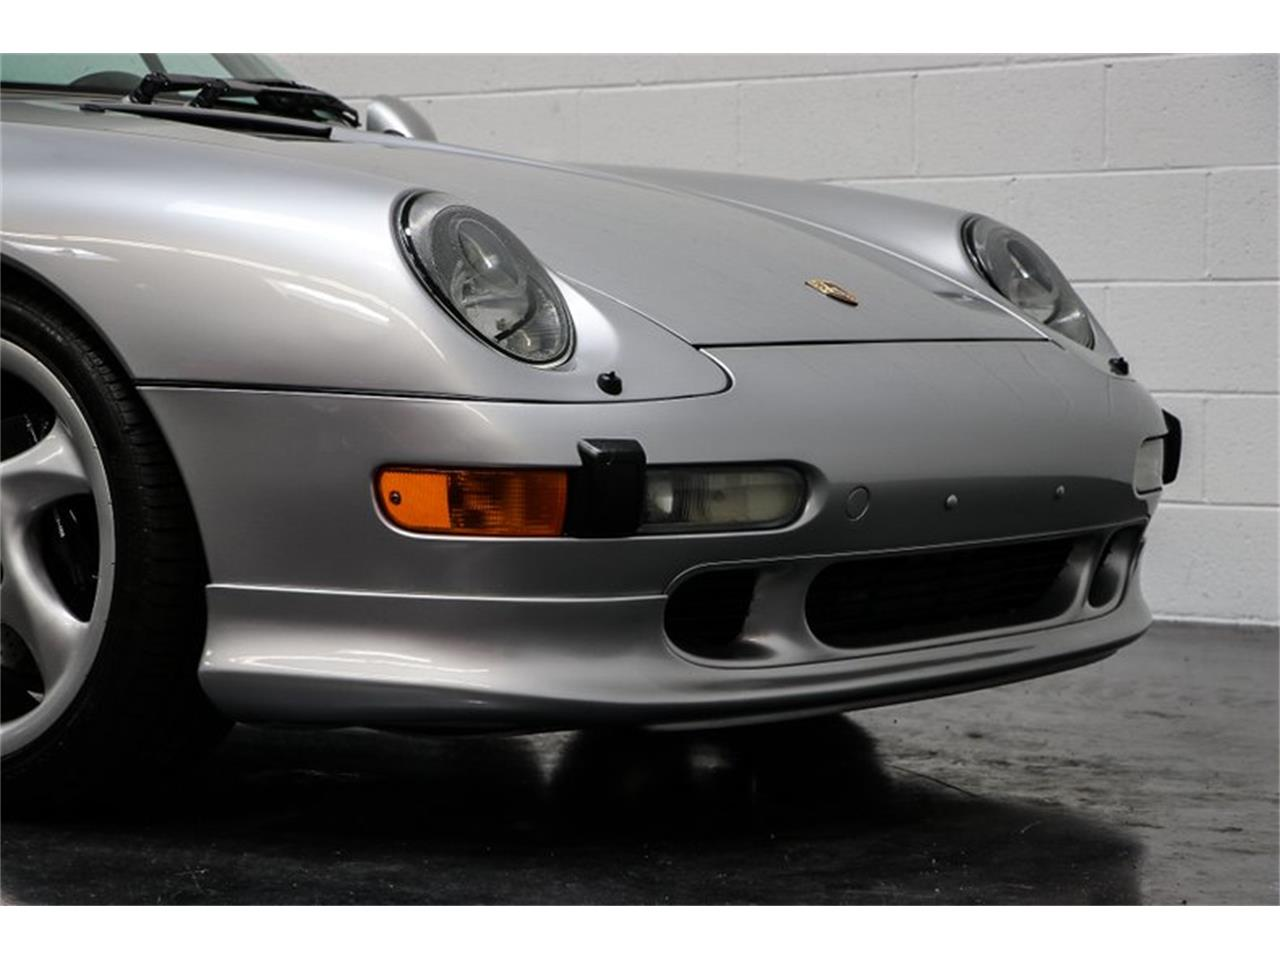 1998 Porsche 911 for sale in Costa Mesa, CA – photo 12